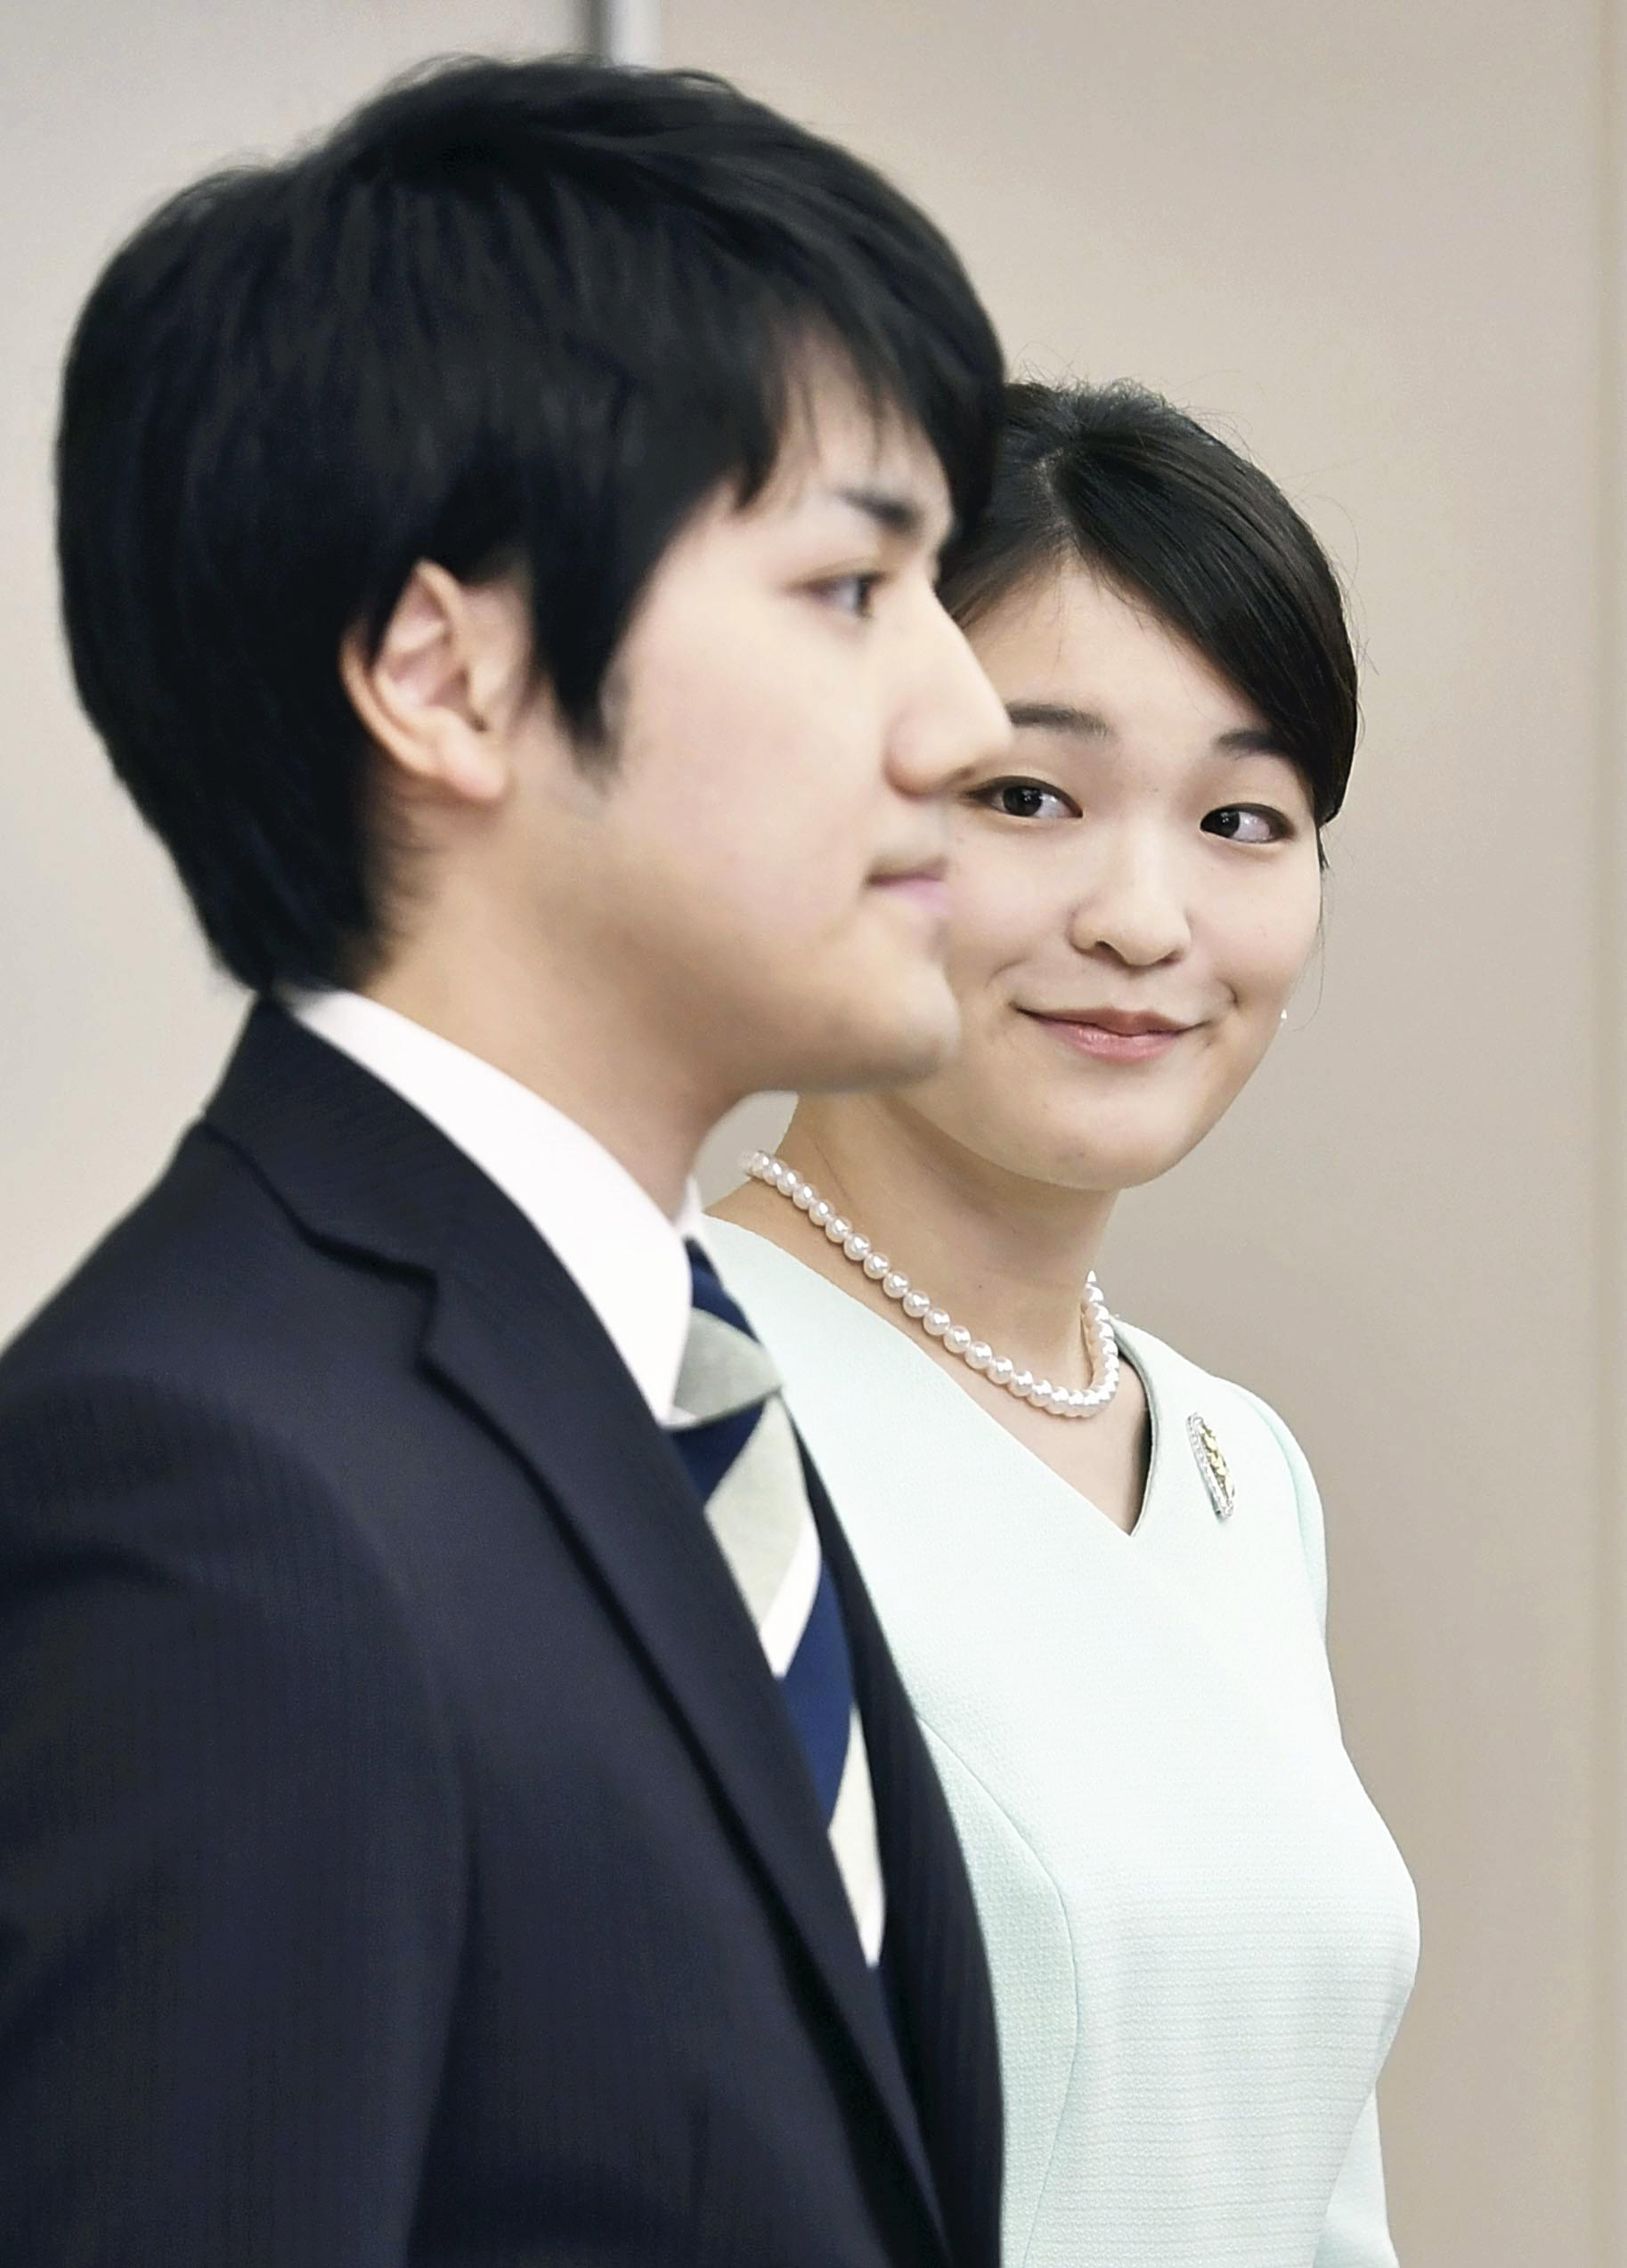 The pair, both aged 25, are expected to marry next year. (AFP)